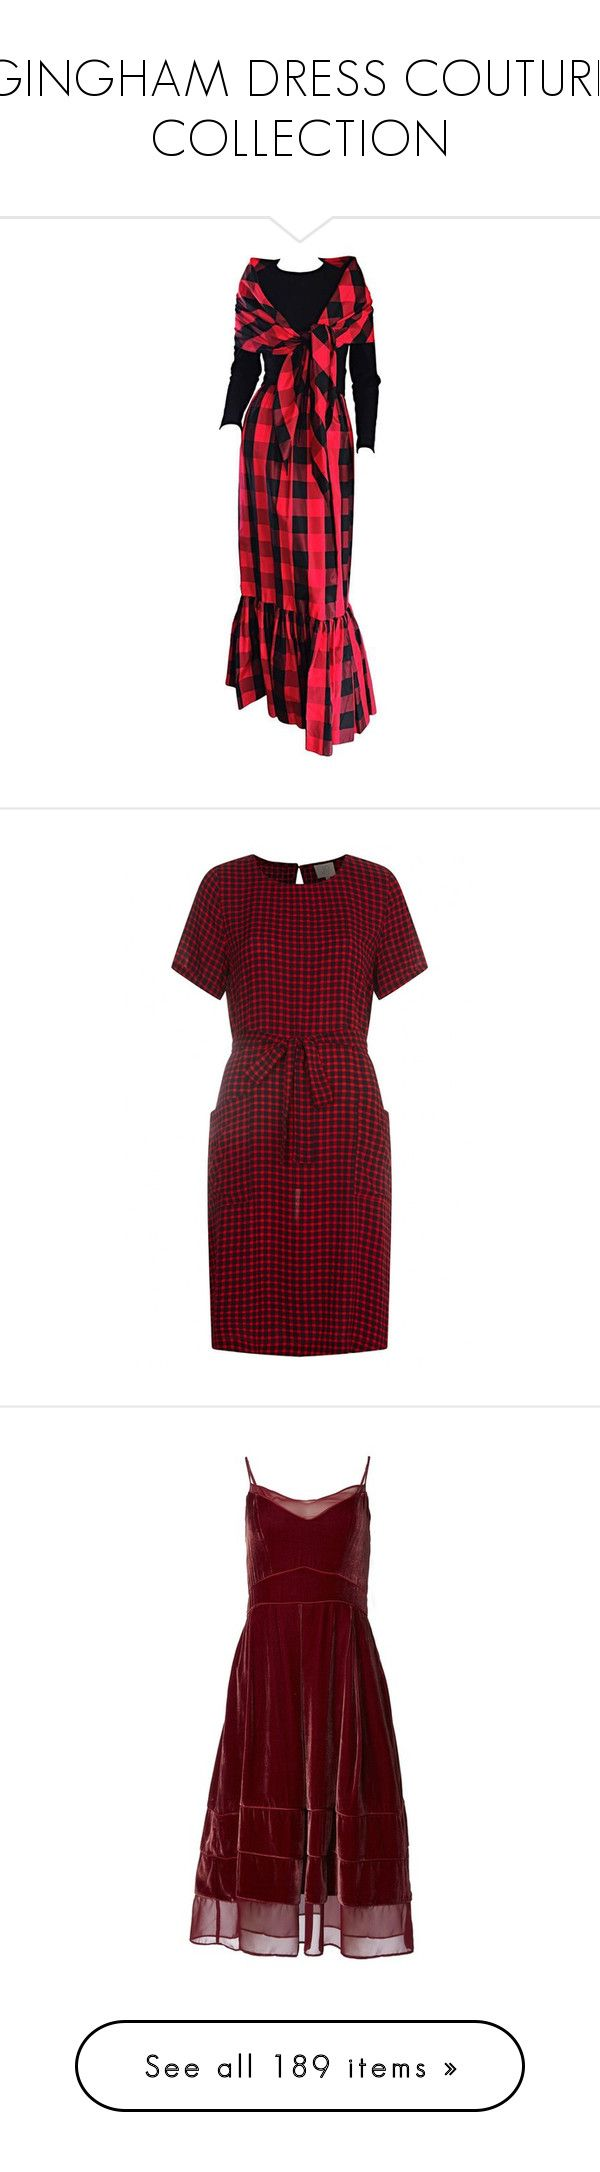 """""""GINGHAM DRESS COUTURE COLLECTION"""" by kuropirate ❤ liked on Polyvore featuring dresses, evening gowns, red, red and black dress, long flared dress, red flare dress, red gingham dress, sleeved dresses, midi dress and summer evening dresses"""